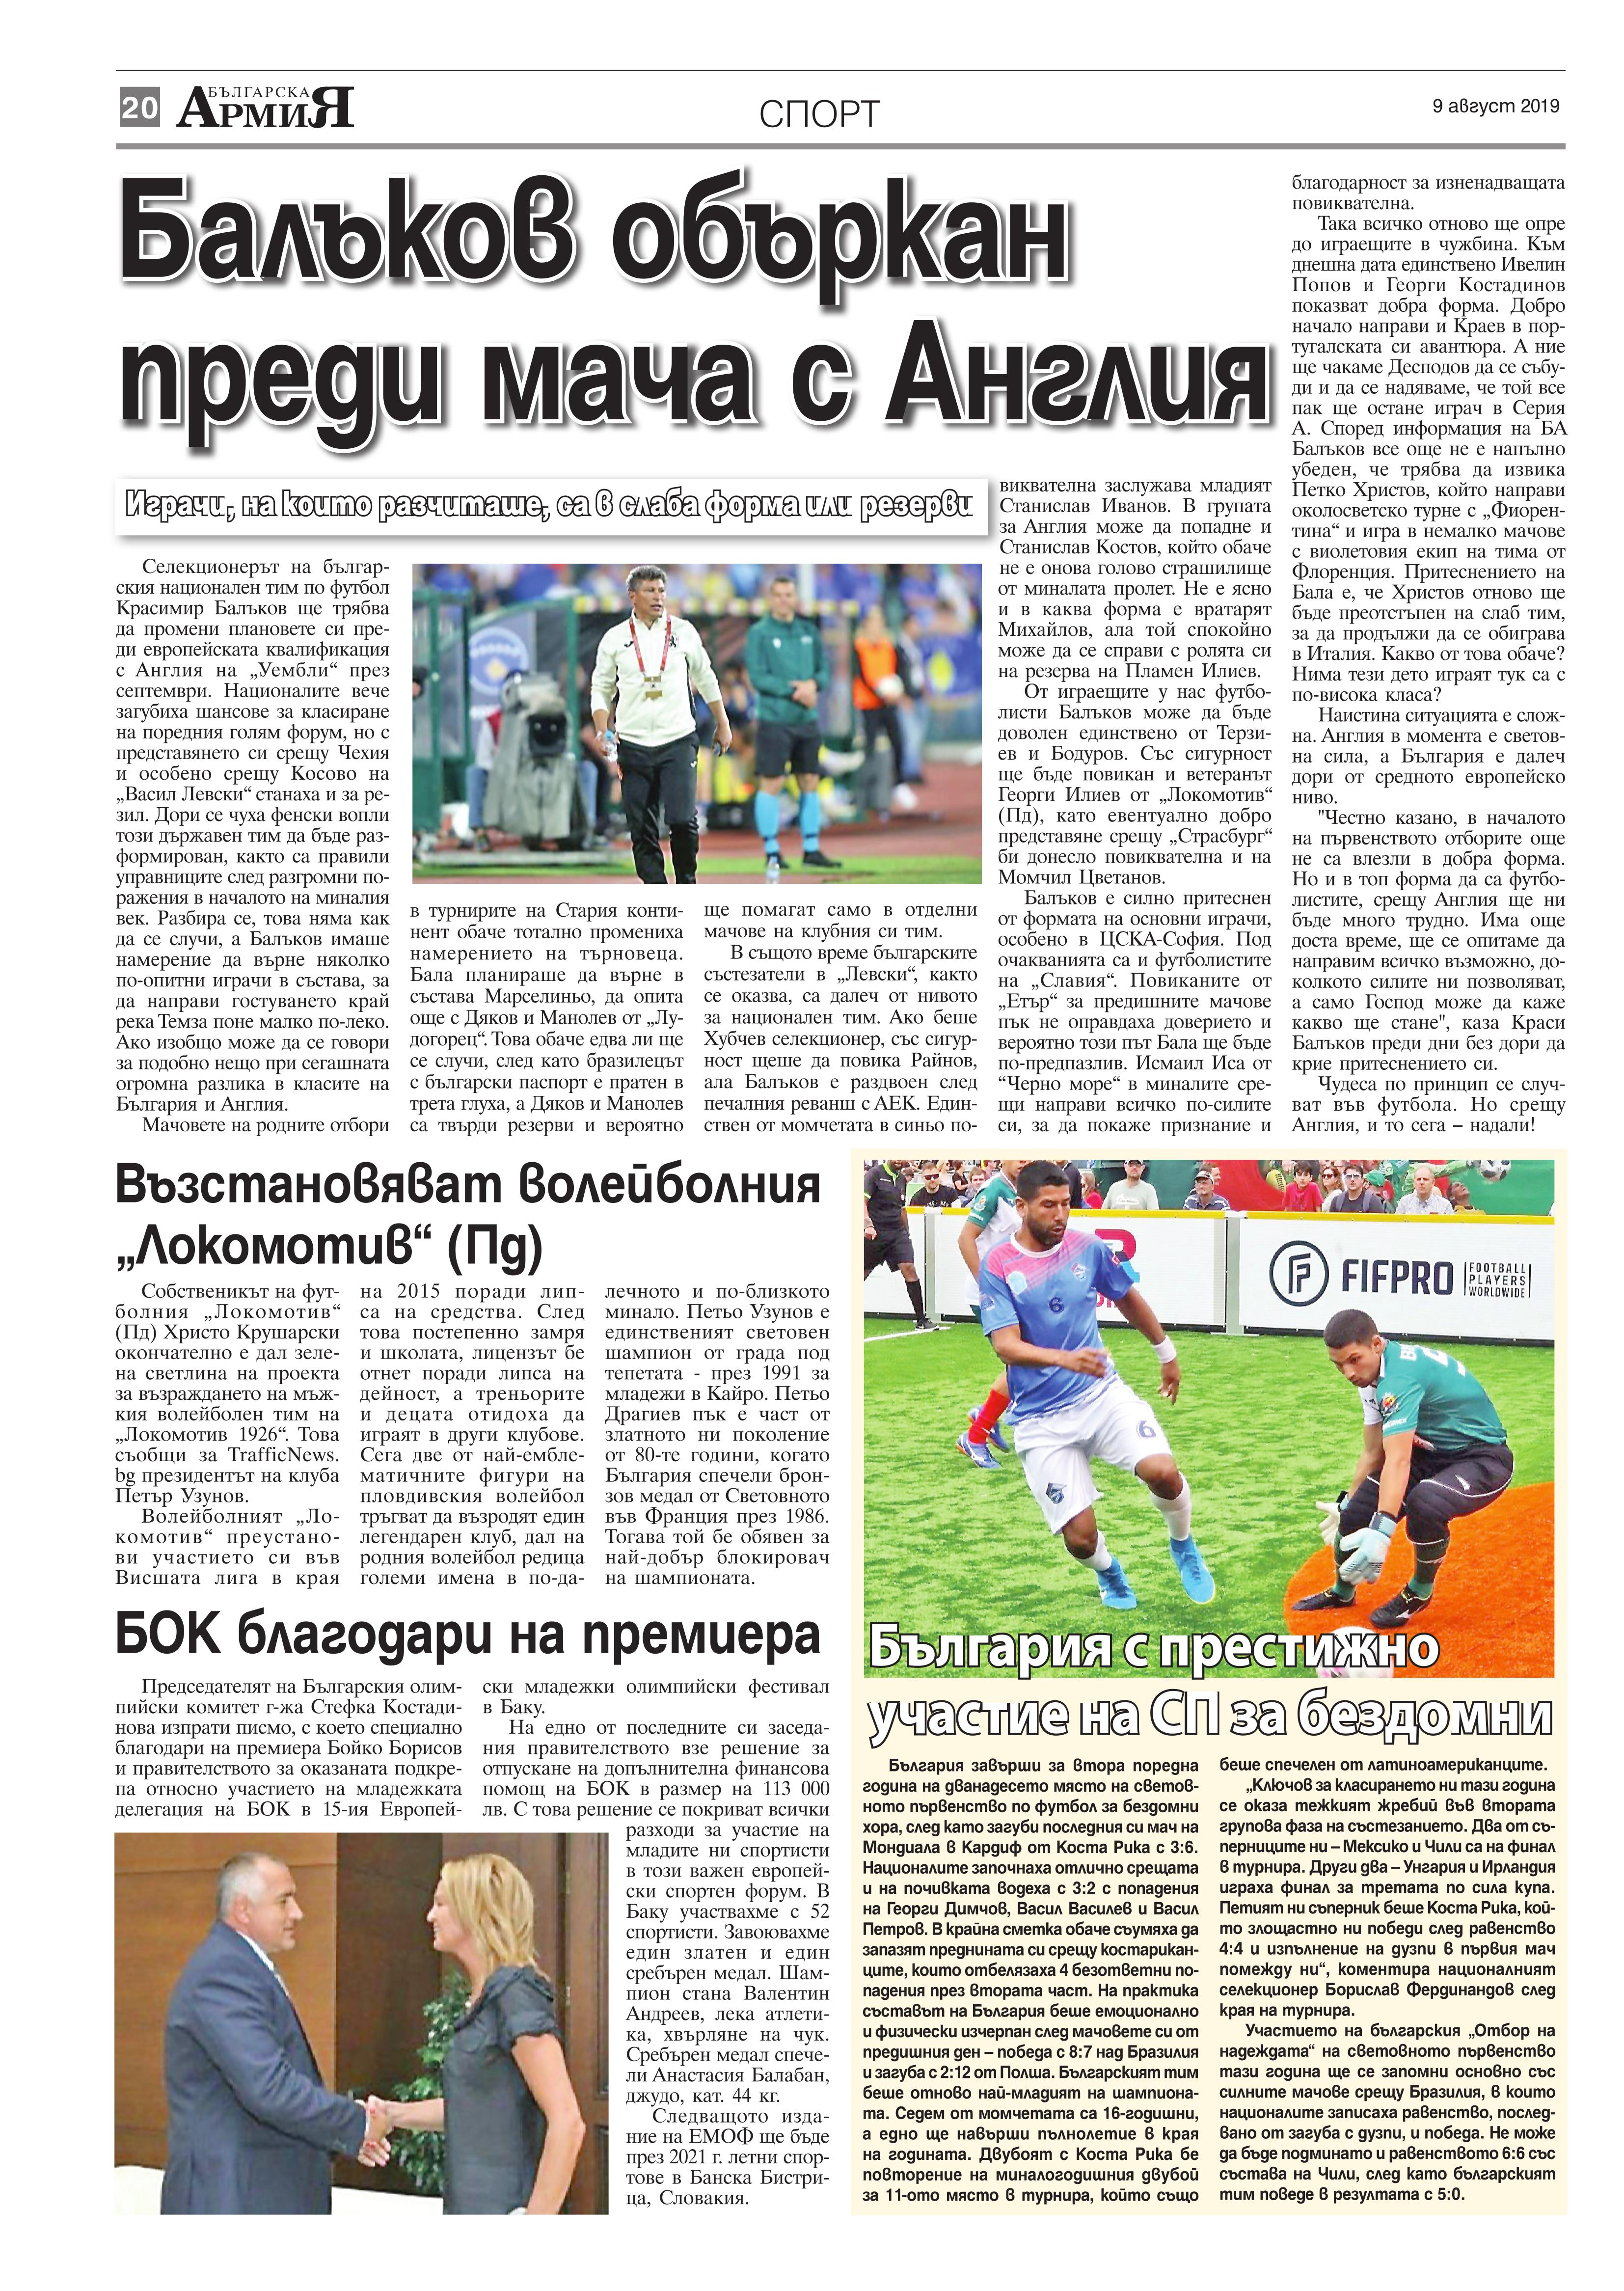 https://www.armymedia.bg/wp-content/uploads/2015/06/20.page1_-106.jpg